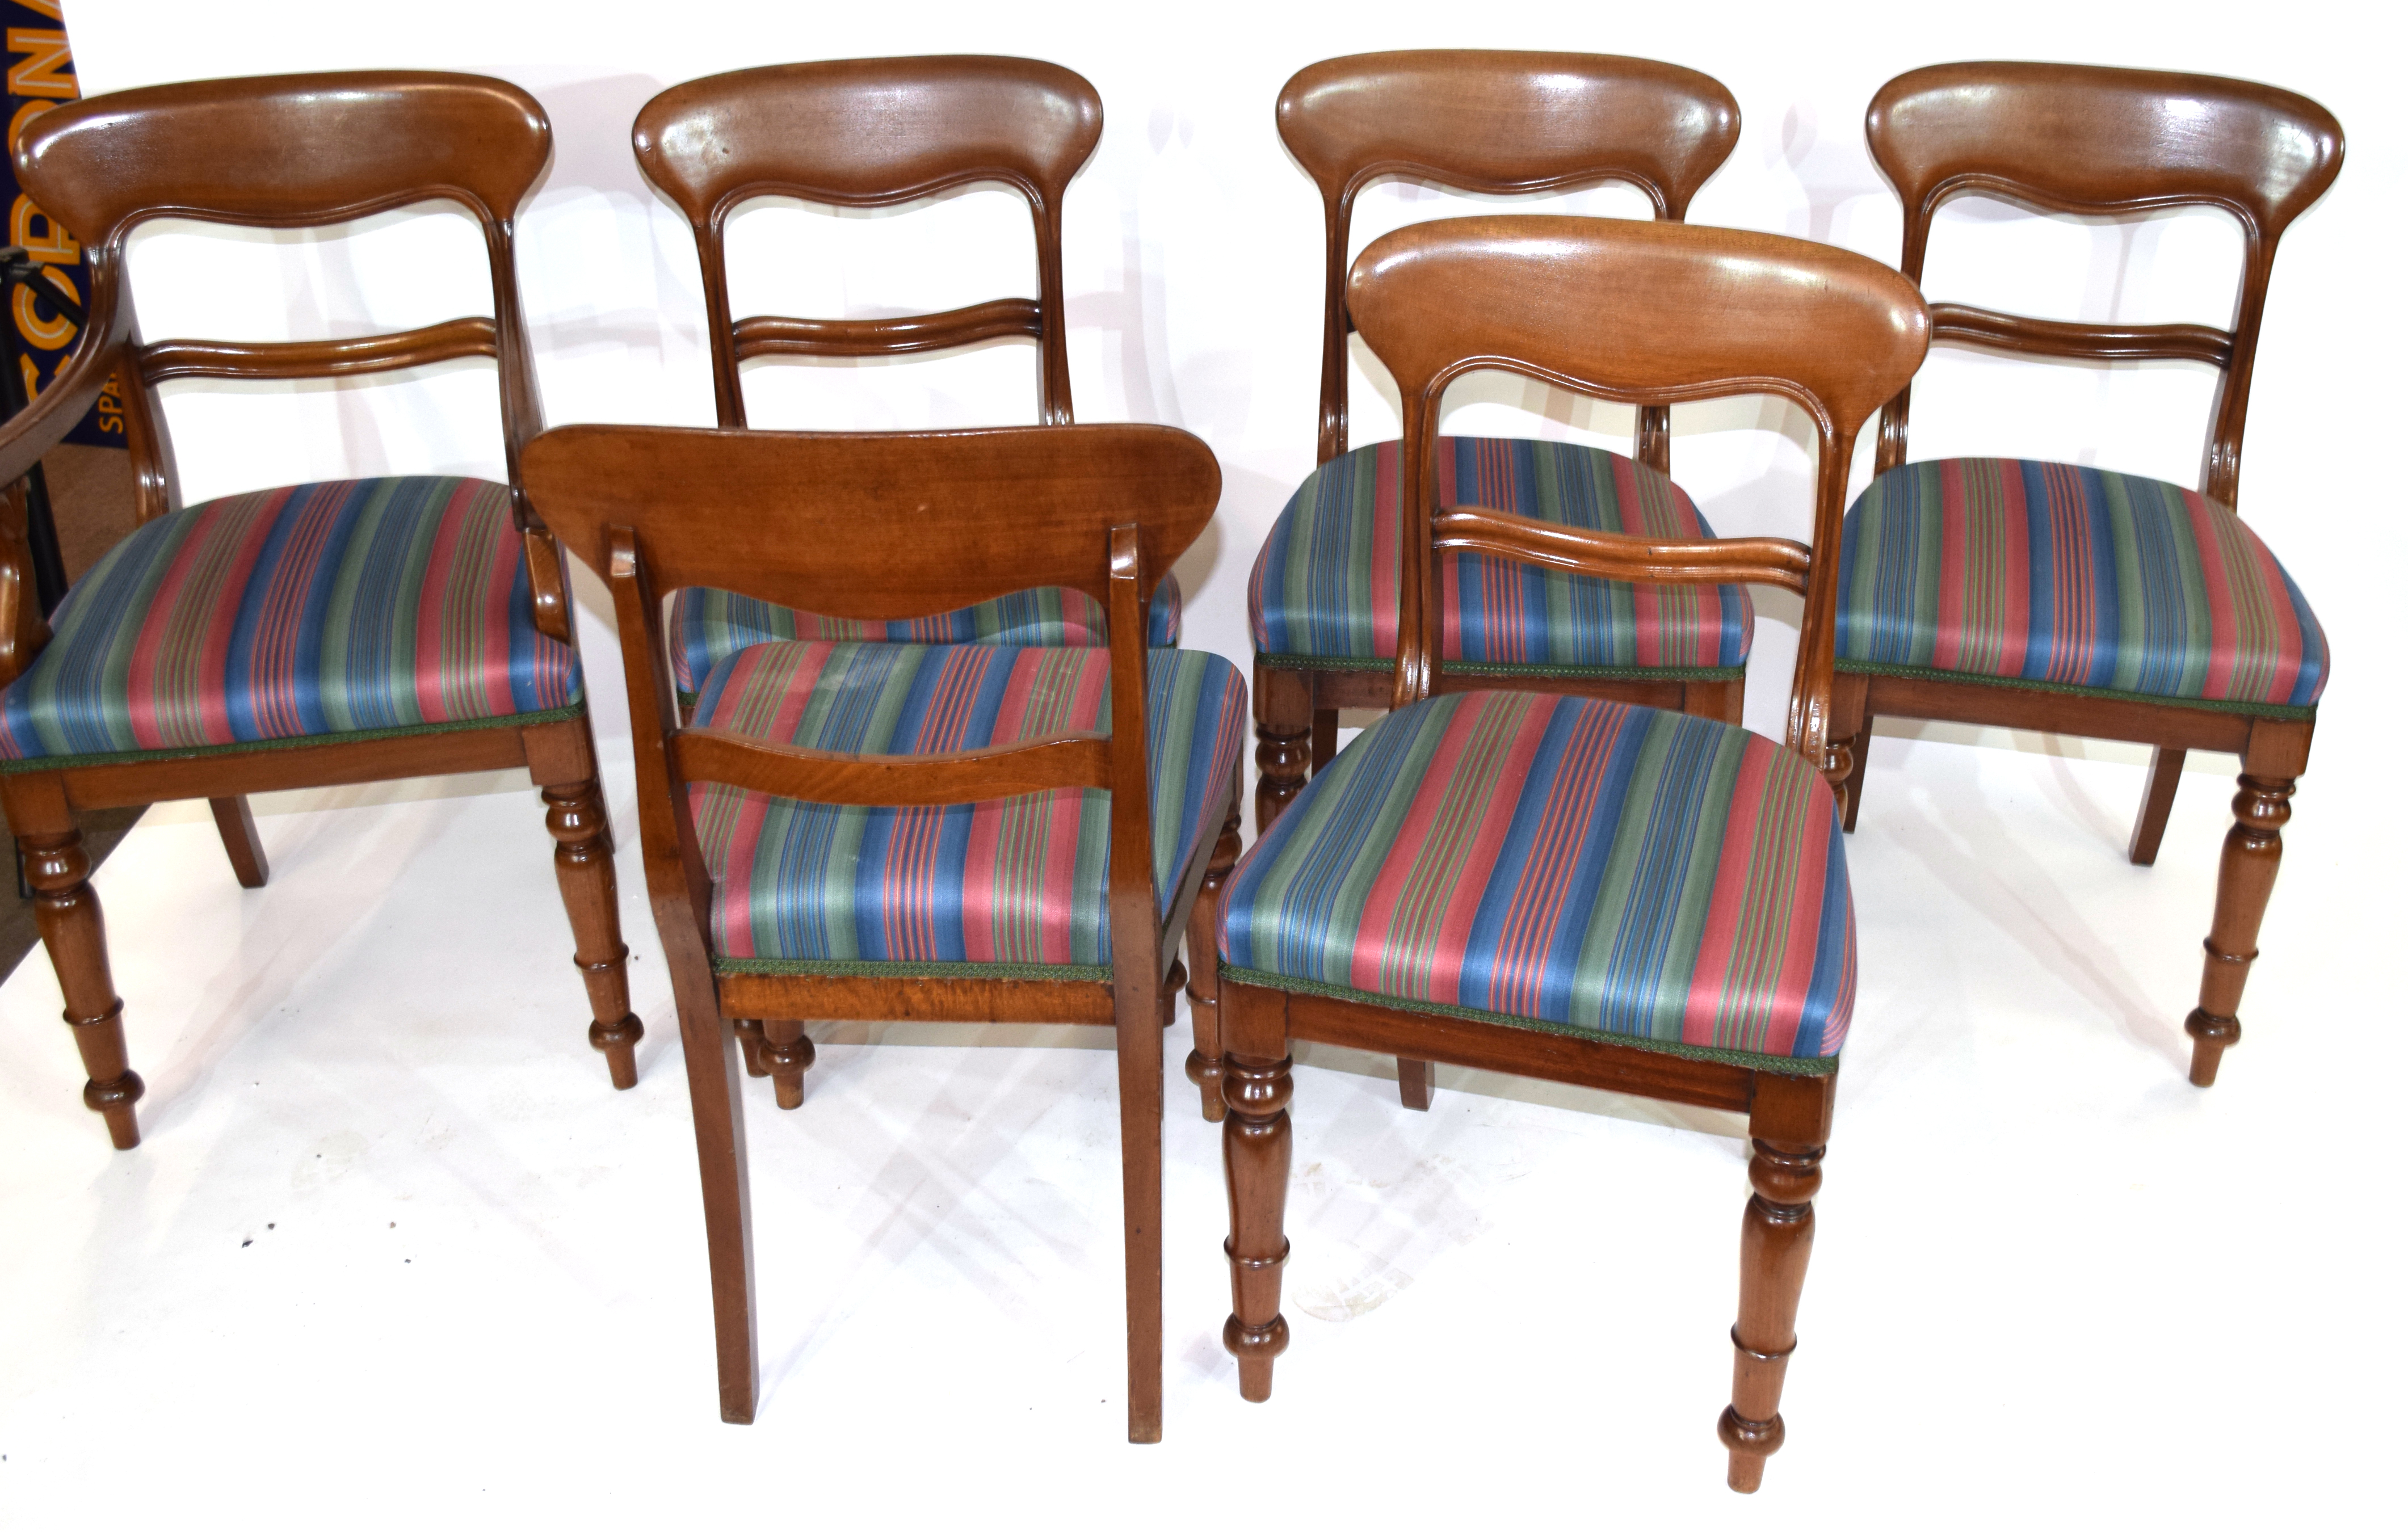 Set of six Victorian mahogany bar back dining chairs, comprising one carver and five single chairs - Image 5 of 5